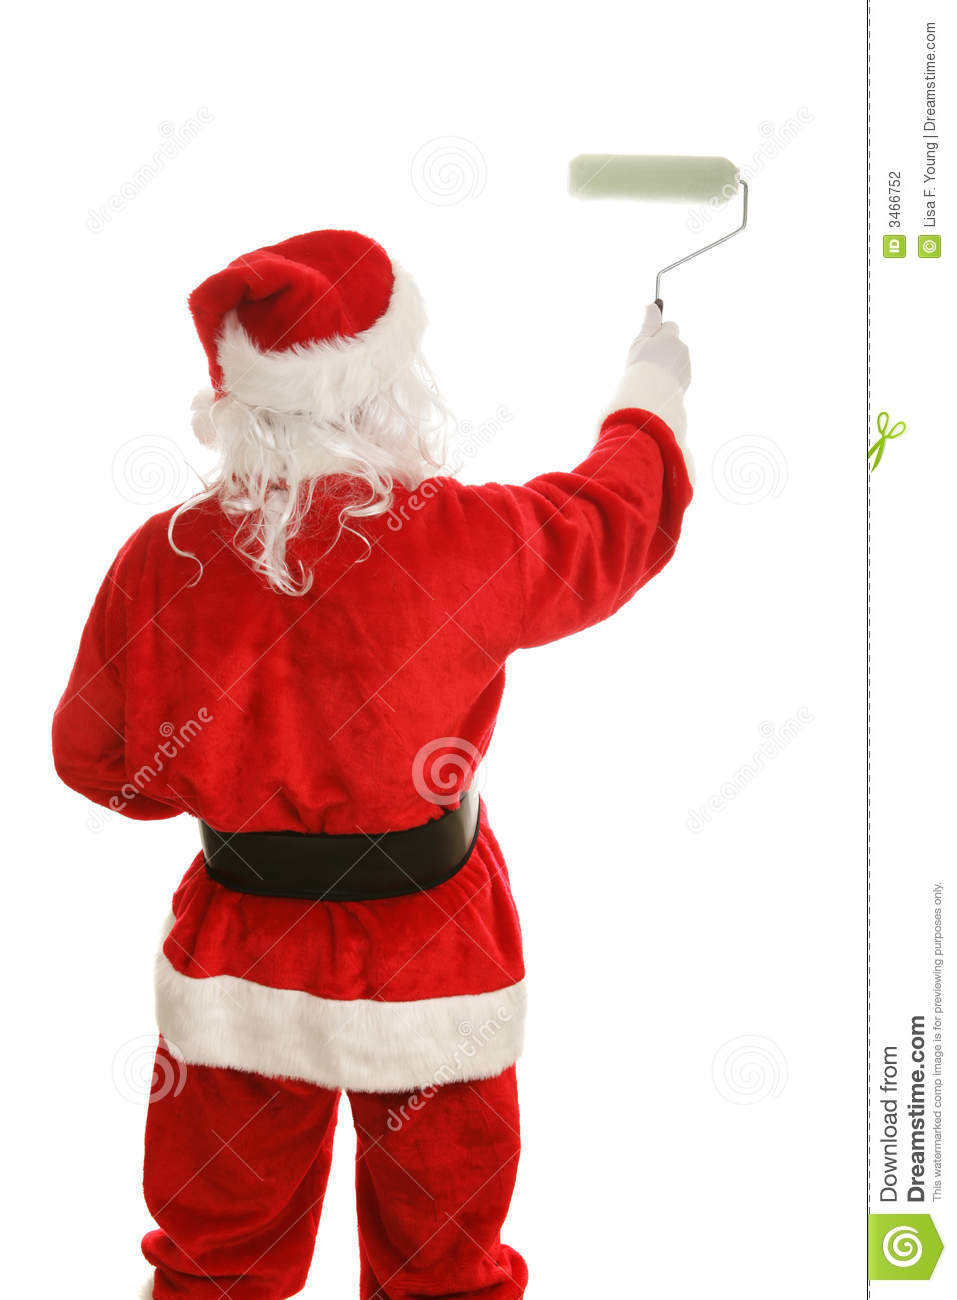 Santa Holding A Paint Brush